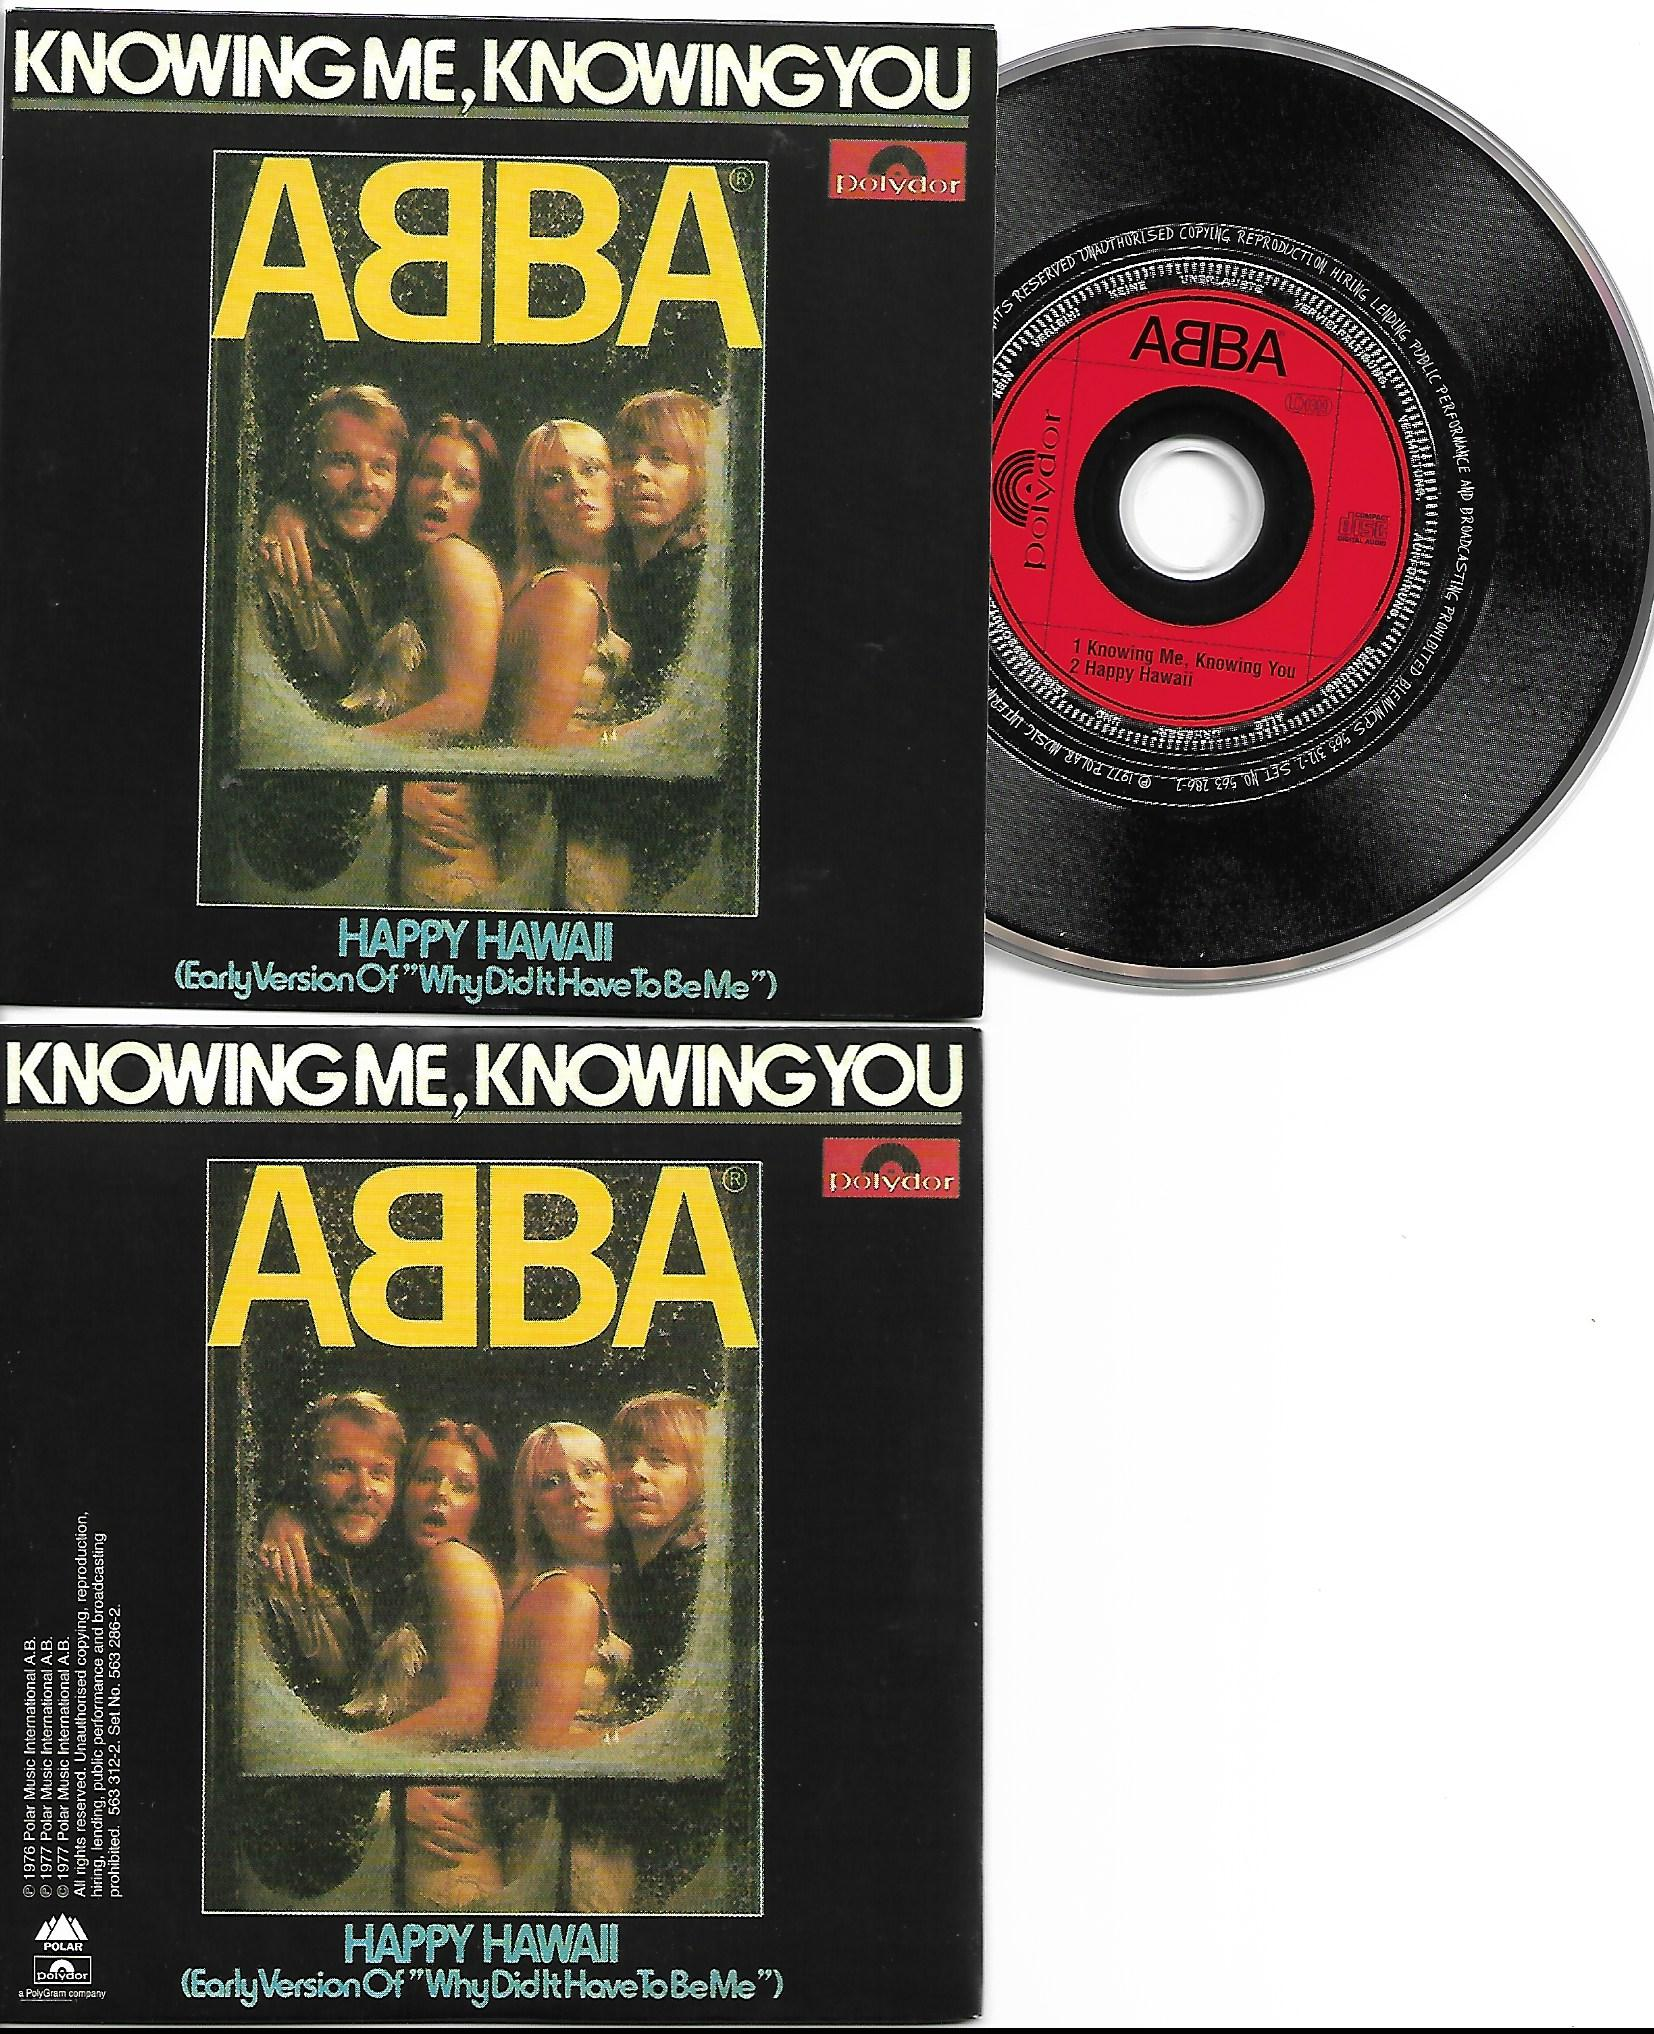 ABBA - Knowing Me Knowing You - Happy Hawa� - 2-track Card Sleeve